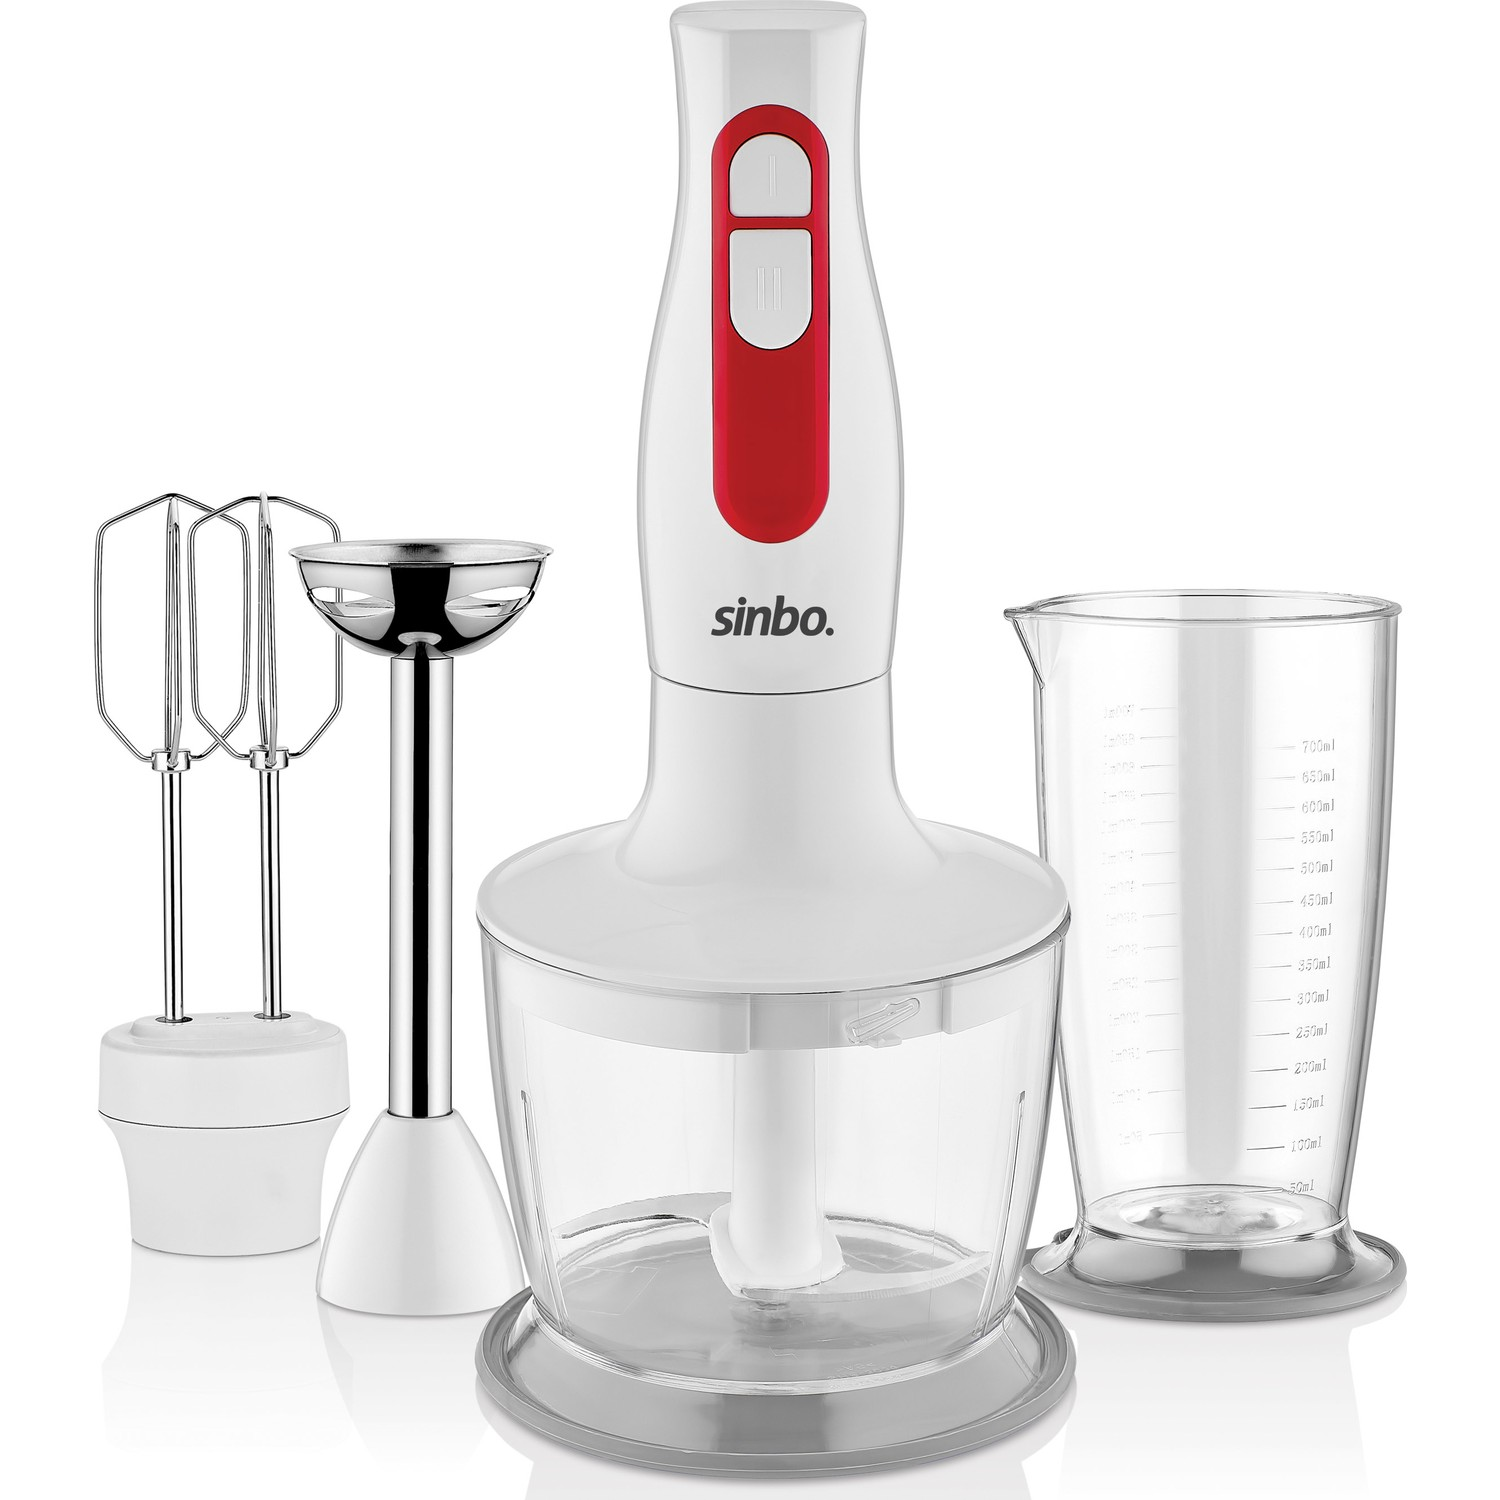 Stainless Steel Immersion Hand Stick Blender Mixer Vegetable Meat Grinder Chopper Whisk Smoothie Cup